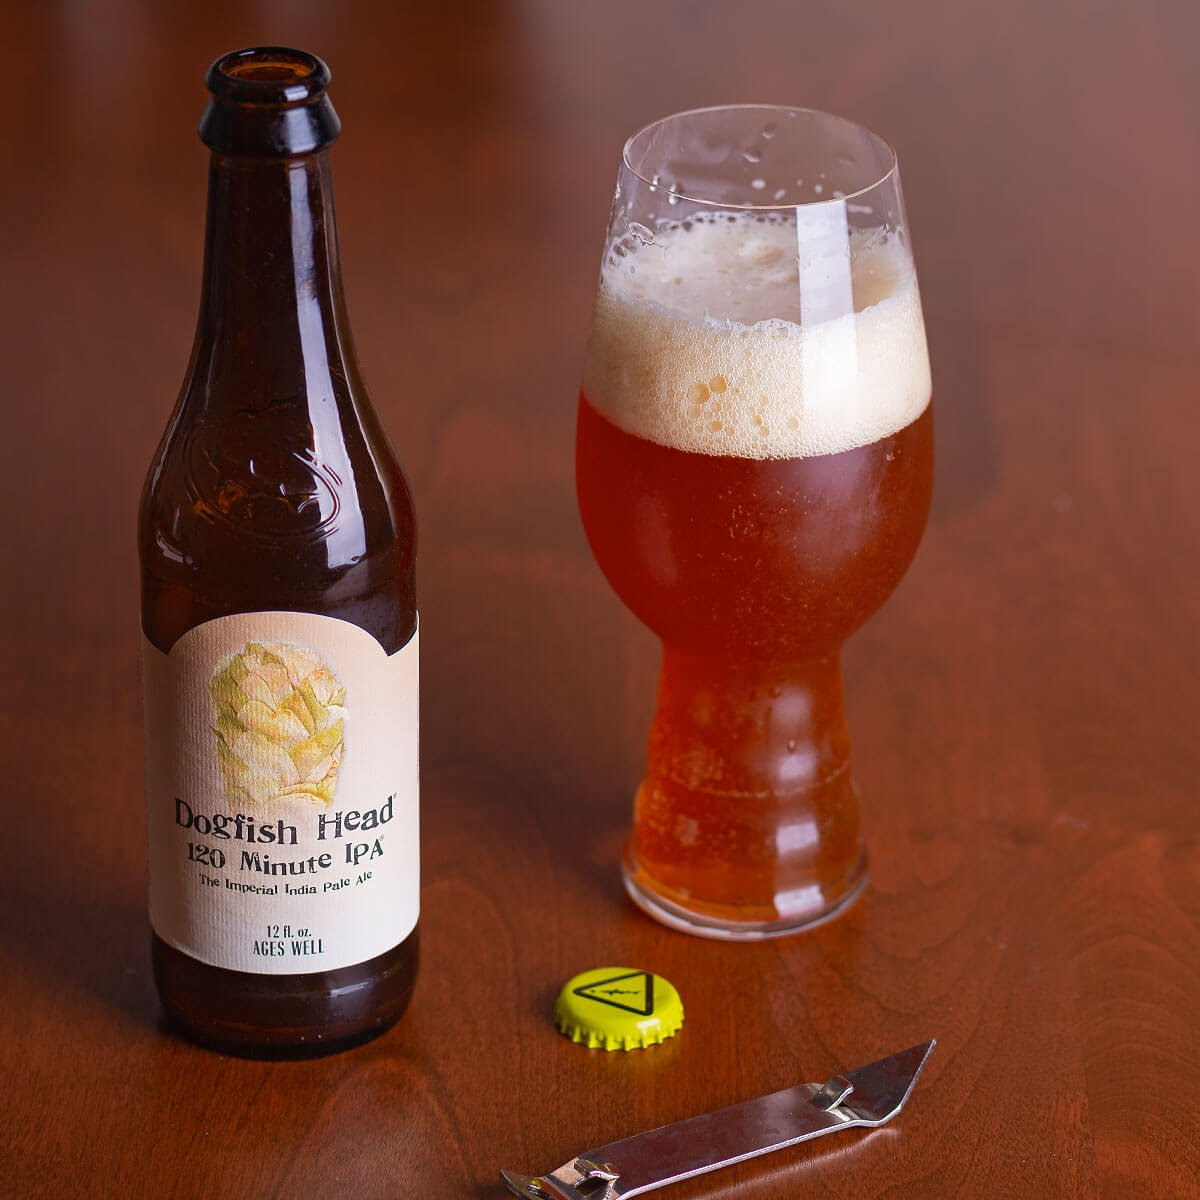 120 Minute IPA, an American Double IPA by Dogfish Head Craft Brewery balances big pine and resin hops with caramel malt, awash with booze.